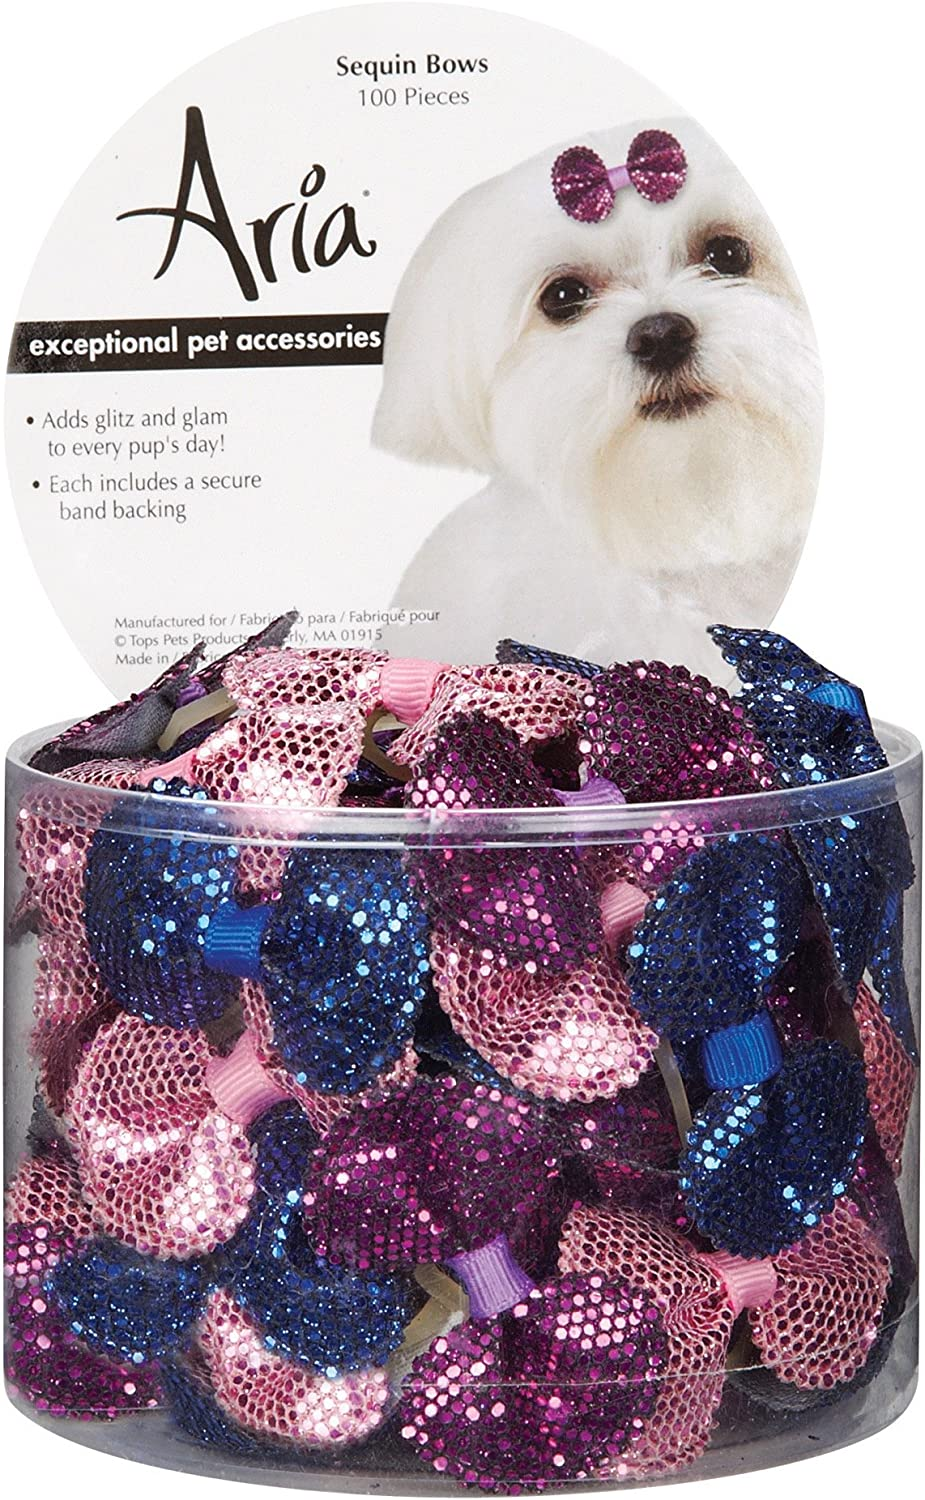 Aria DT5638 99 Sequin Dog Hair Bow Canister, 100 Pieces